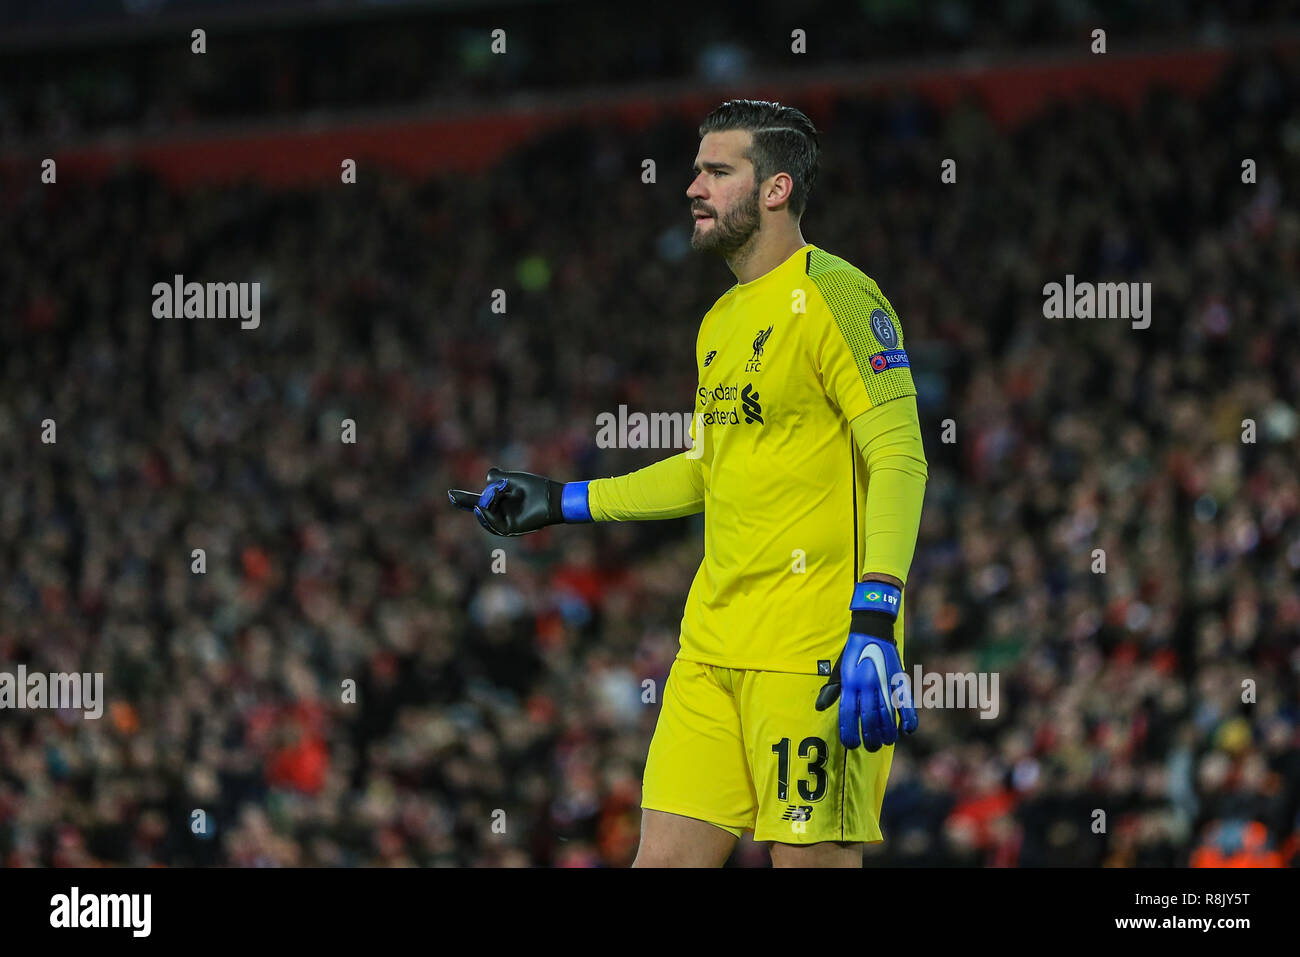 Alisson Becker Stock Photos & Alisson Becker Stock Images